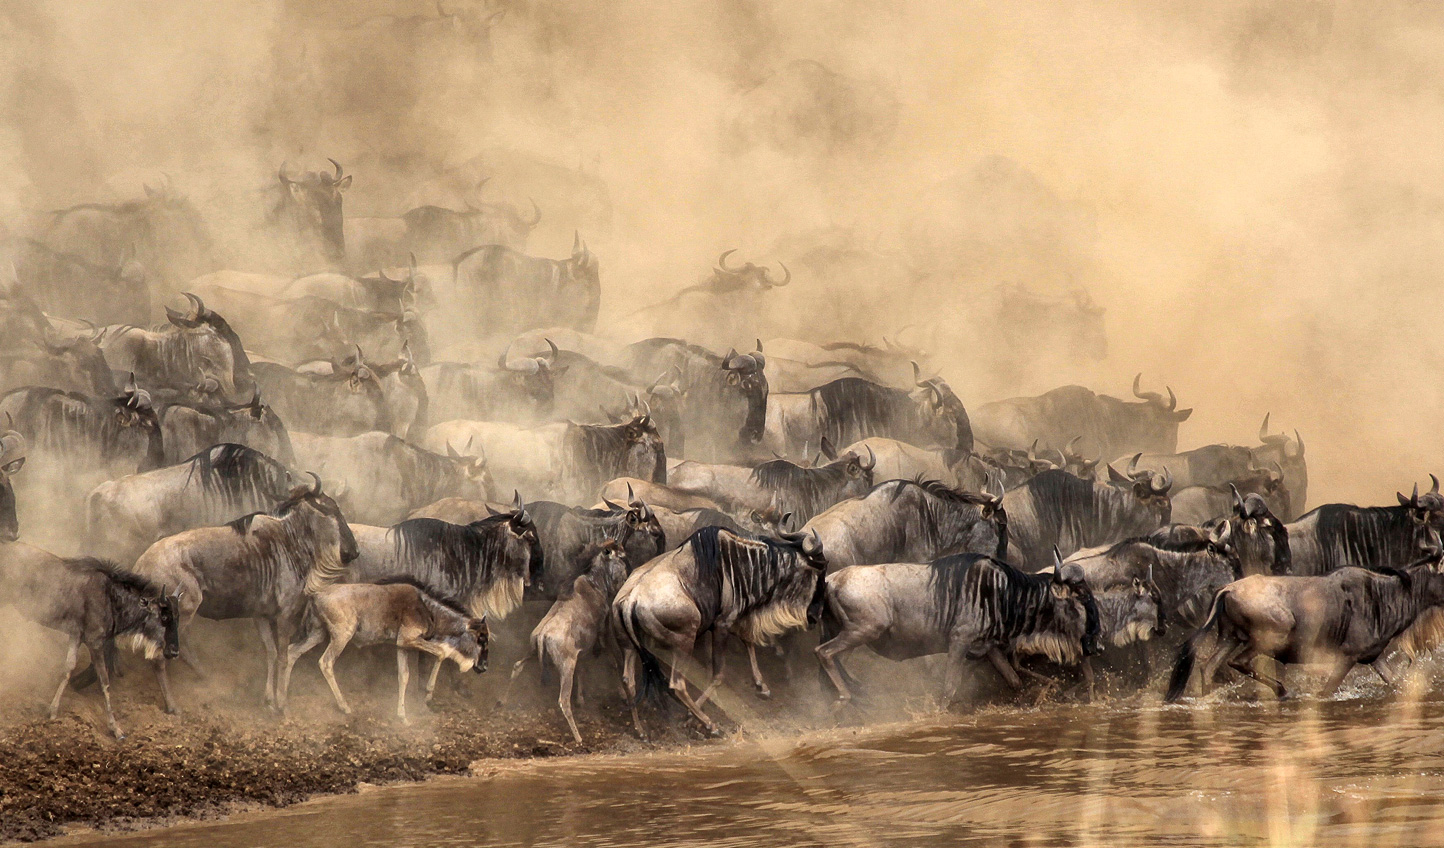 See the dramatic wildebeests river crossings for yourself